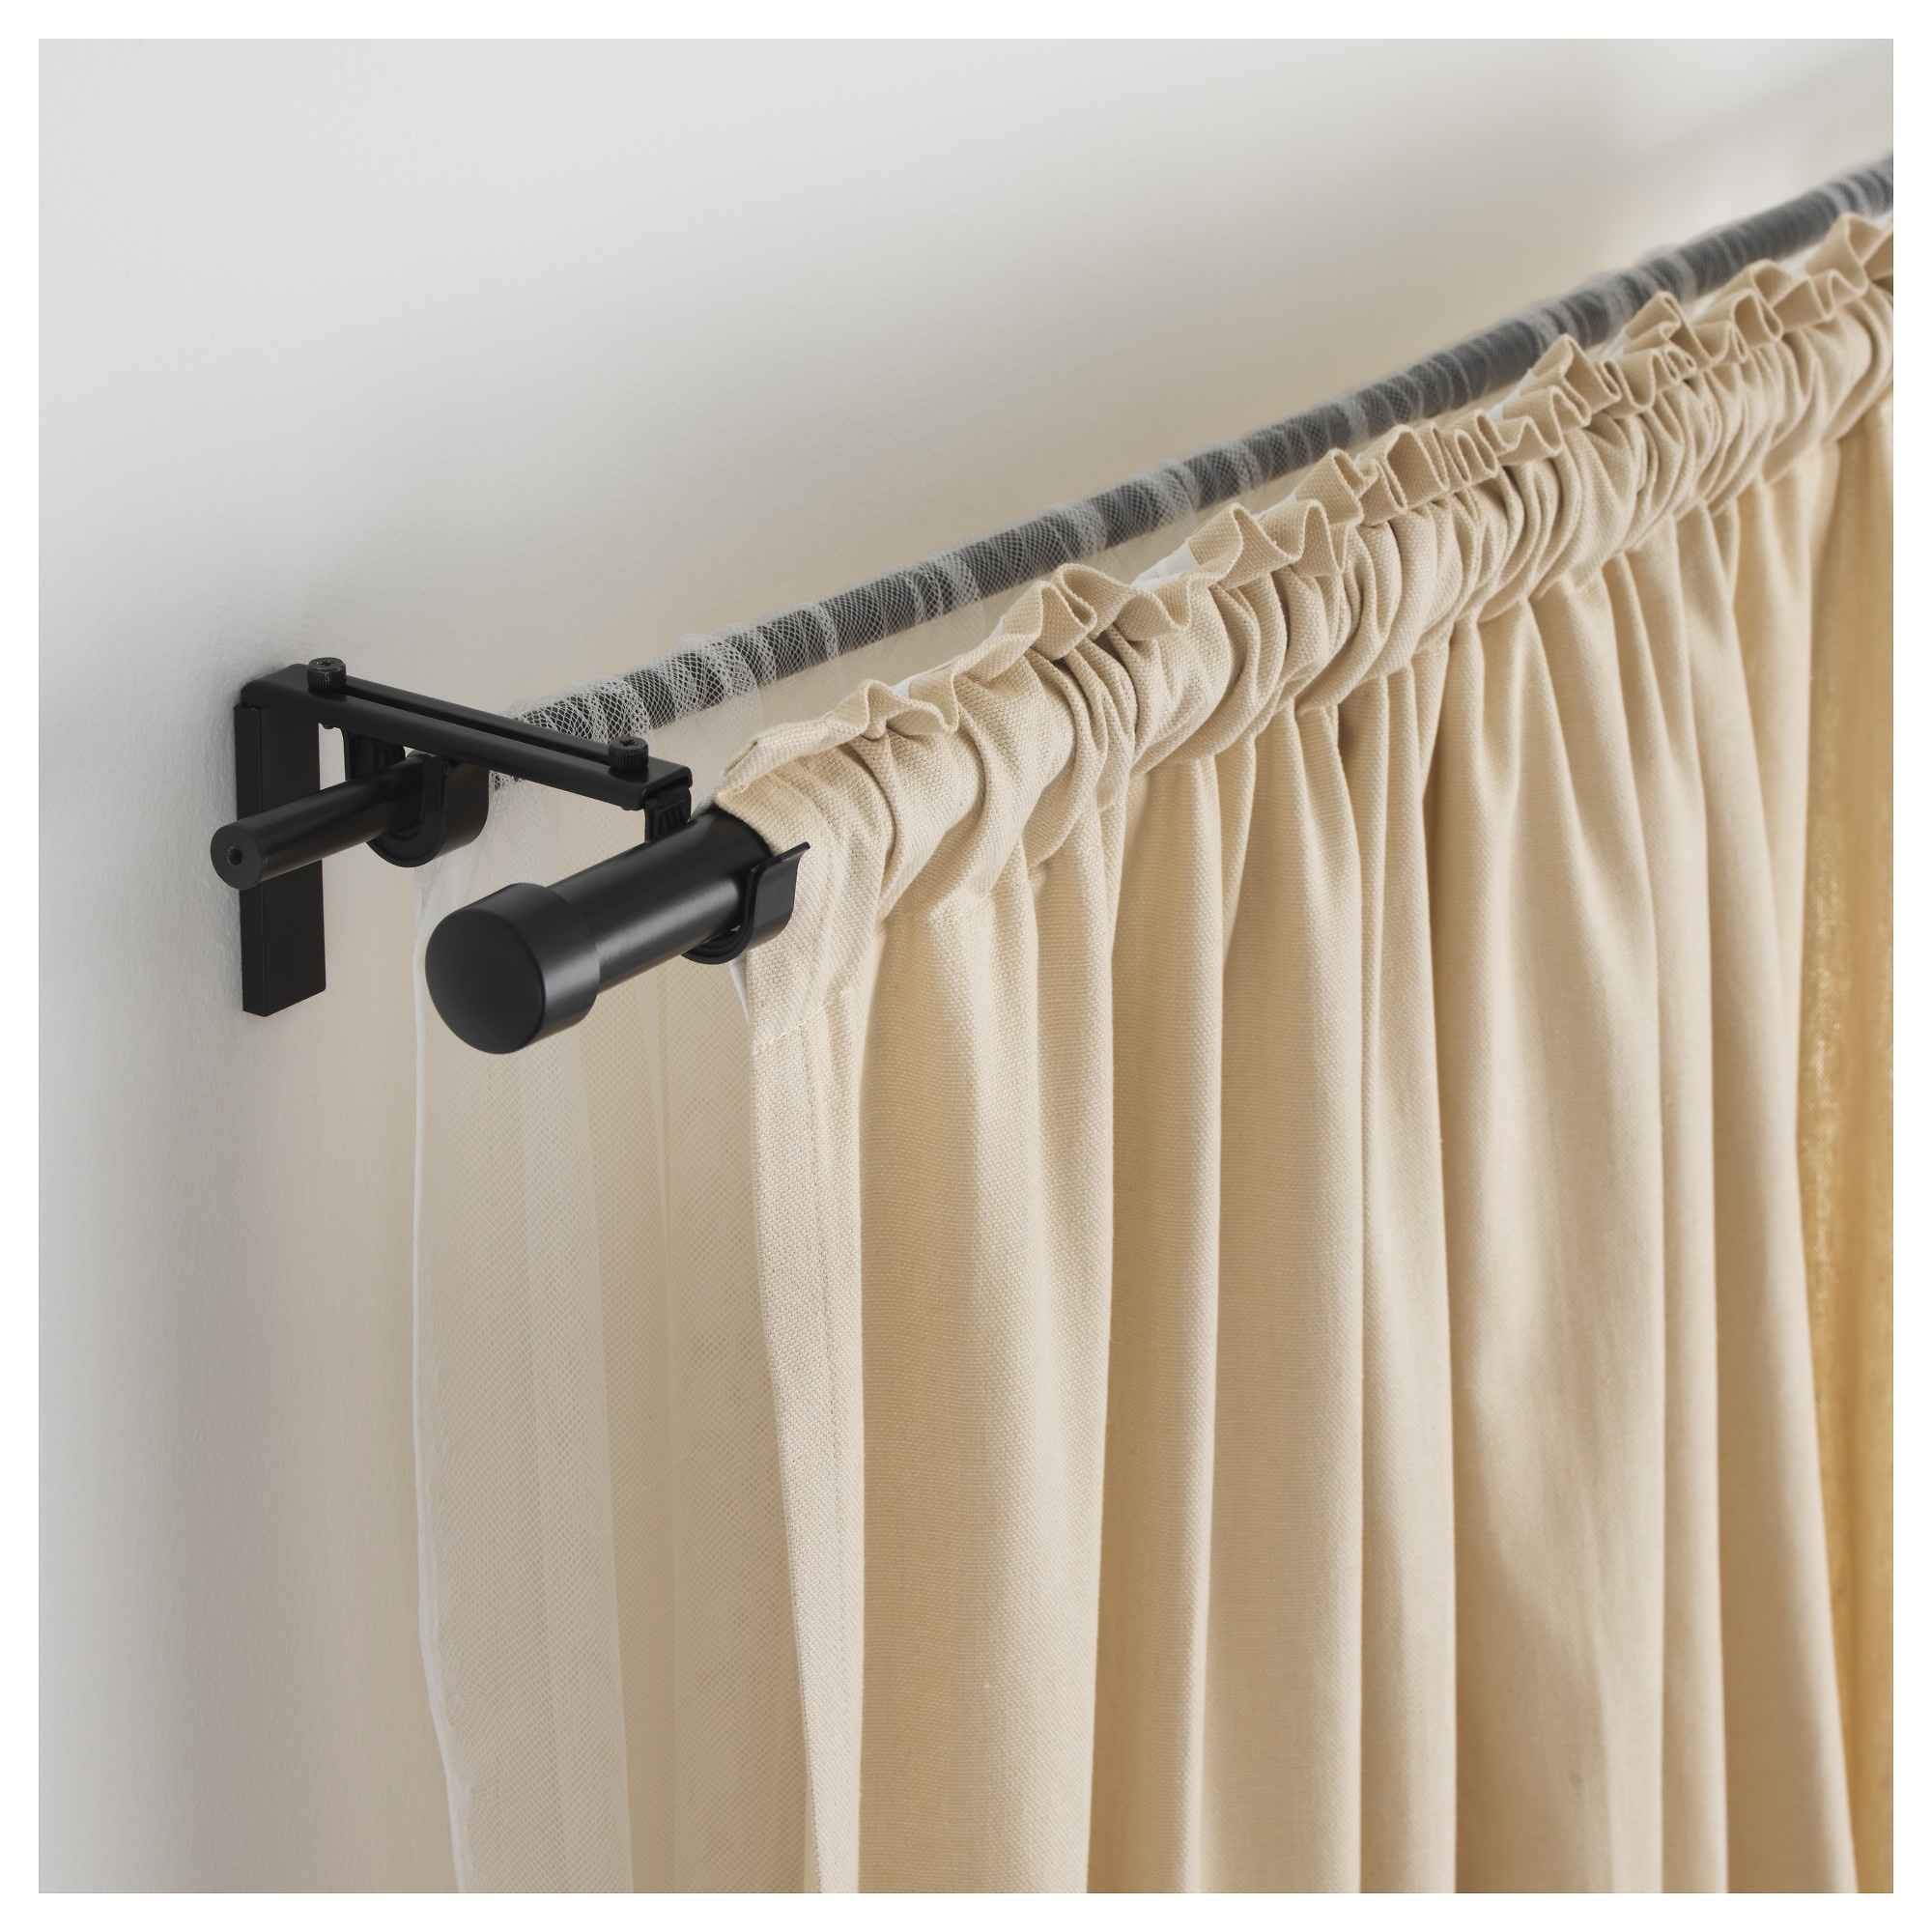 RÄCKA / HUGAD Double curtain rod combination - IKEA